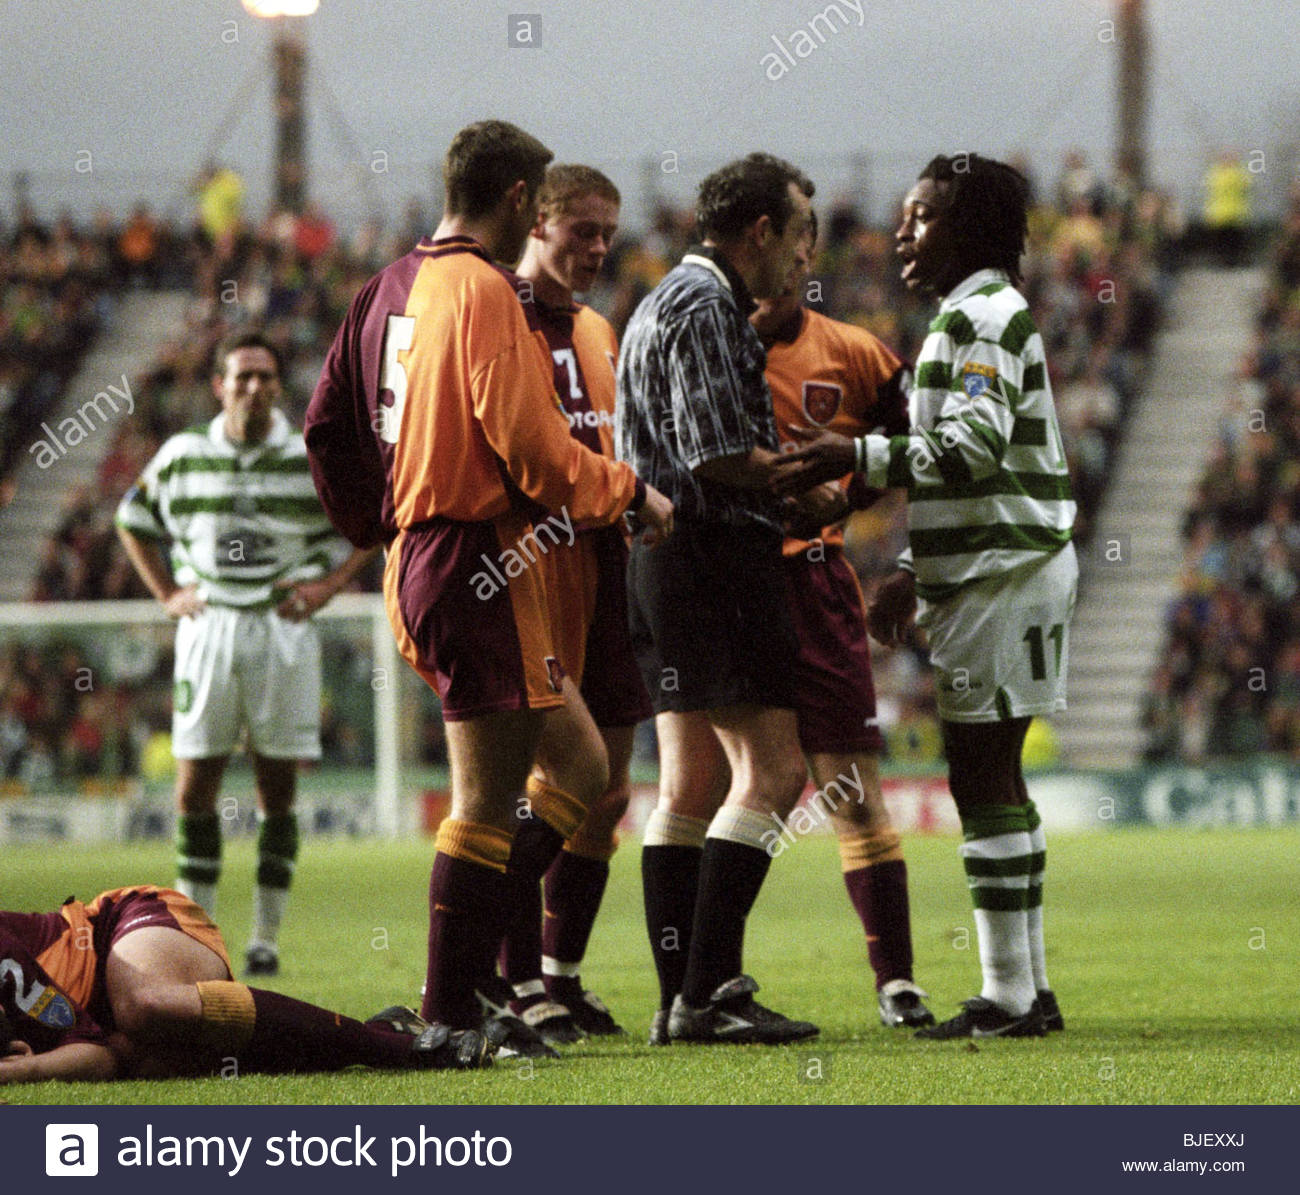 15/11/97 BELL'S PREMIER DIVISION CELTIC v MOTHERWELL (0-2) CELTIC PARK - GLASGOW Referee Willie Young prepares - Stock Image